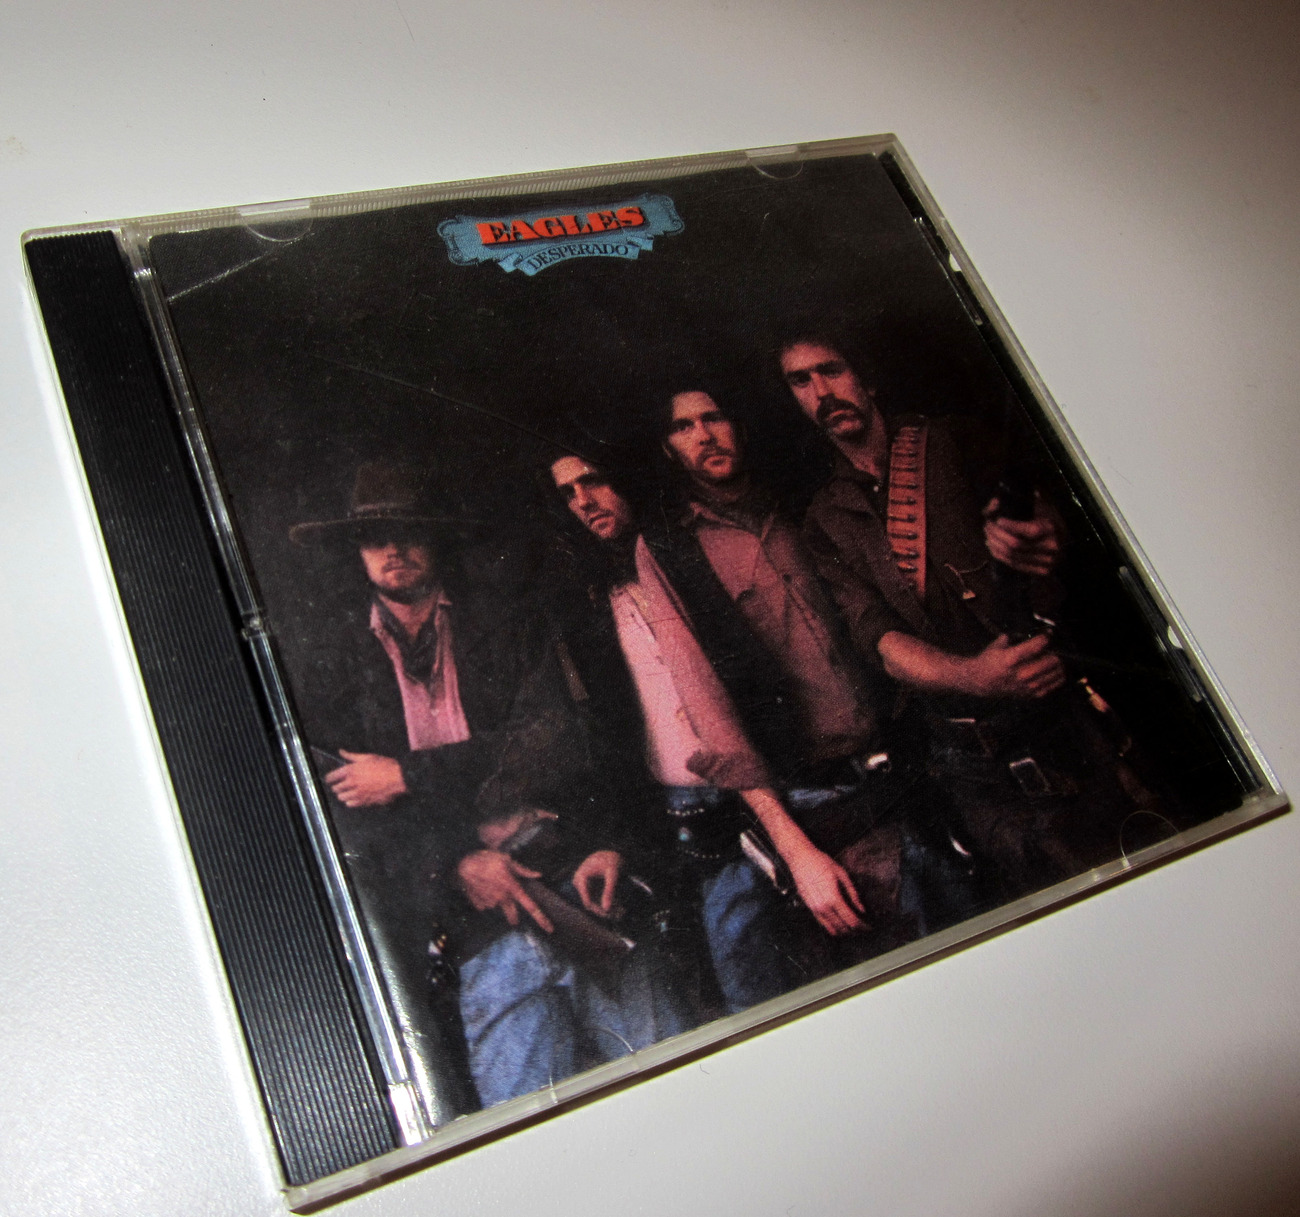 CD Desperado by the Eagles (c) 1973